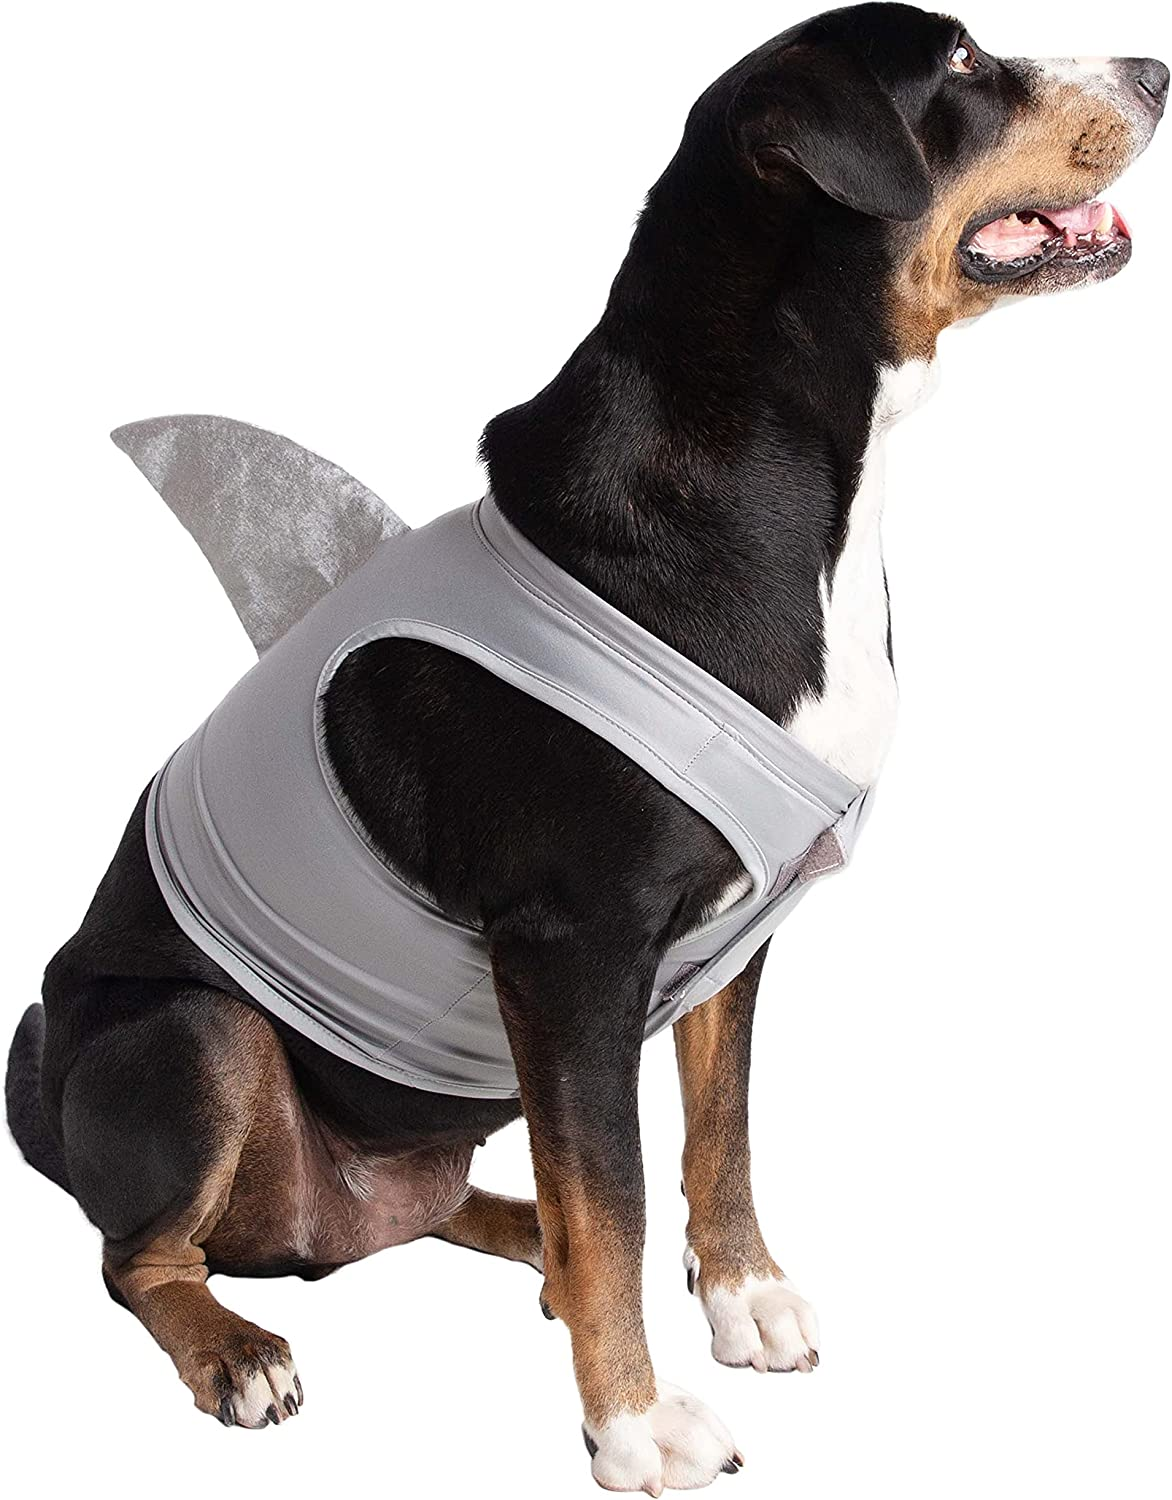 Pet Krewe Dog Shark Costume | Pet Costume for Dogs 1st Birthday, National Cat Day & Celebrations | Halloween Outfit for Small and Large Cats & Dogs (Large)